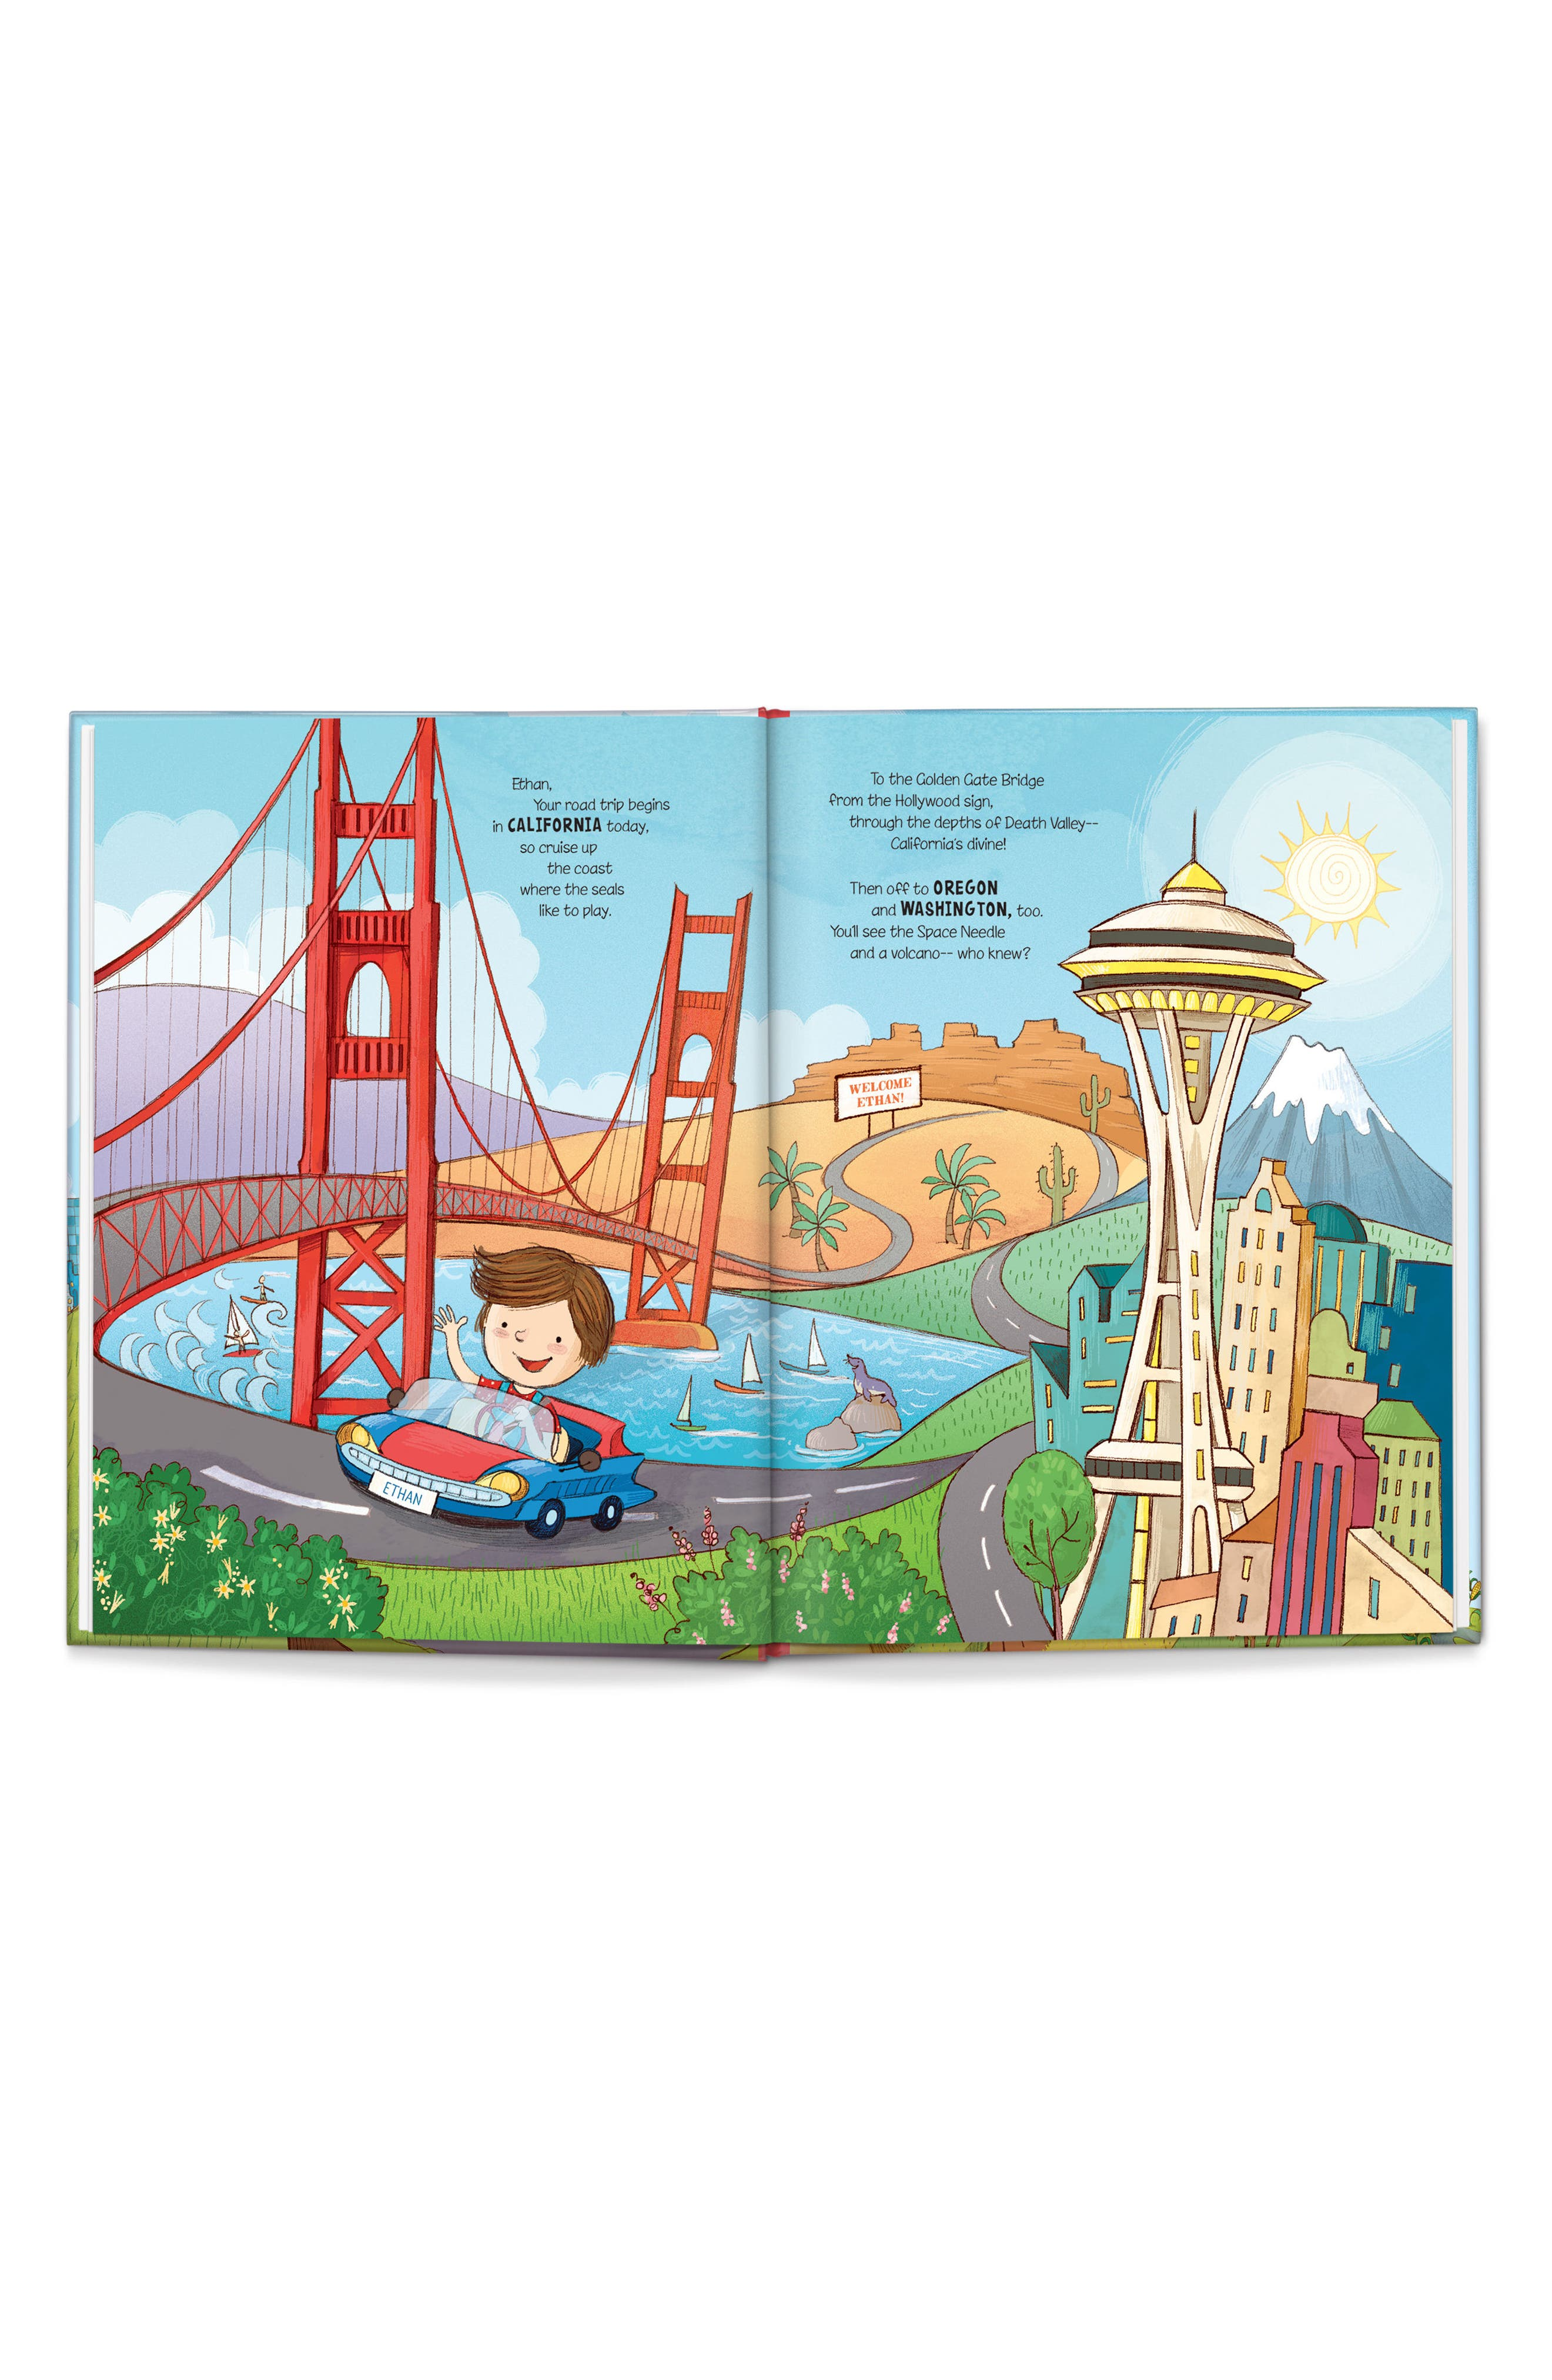 'My U.S.A. Road Trip!' Personalized Storybook,                             Alternate thumbnail 2, color,                             Washington